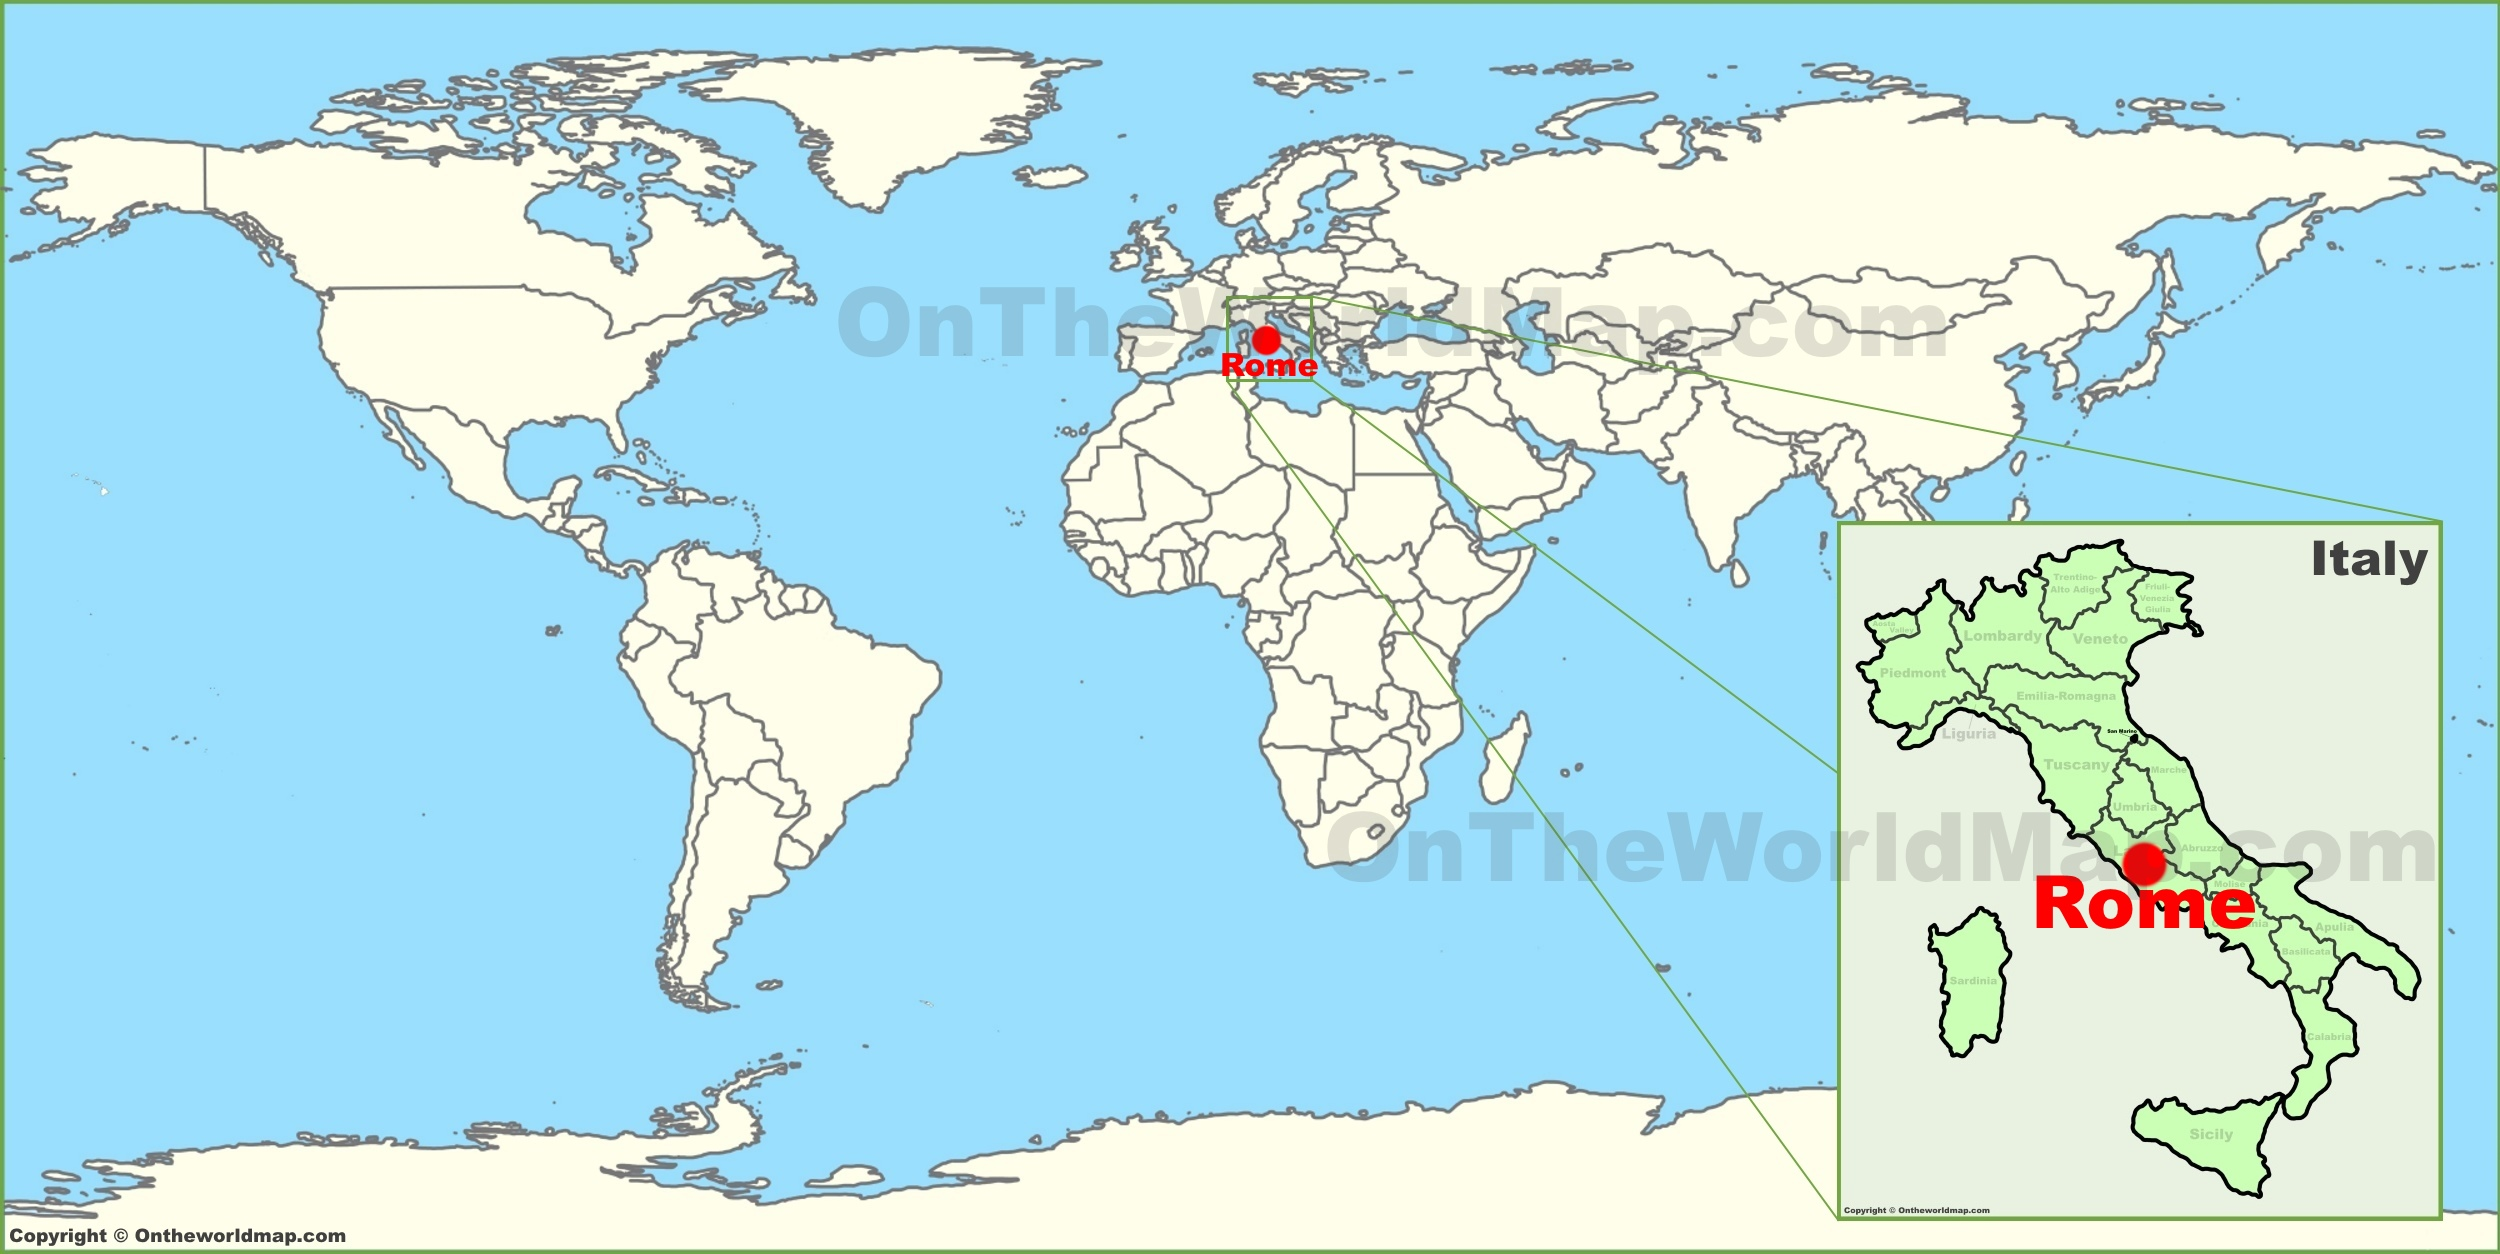 Italy On Map Of World.Rome On The World Map